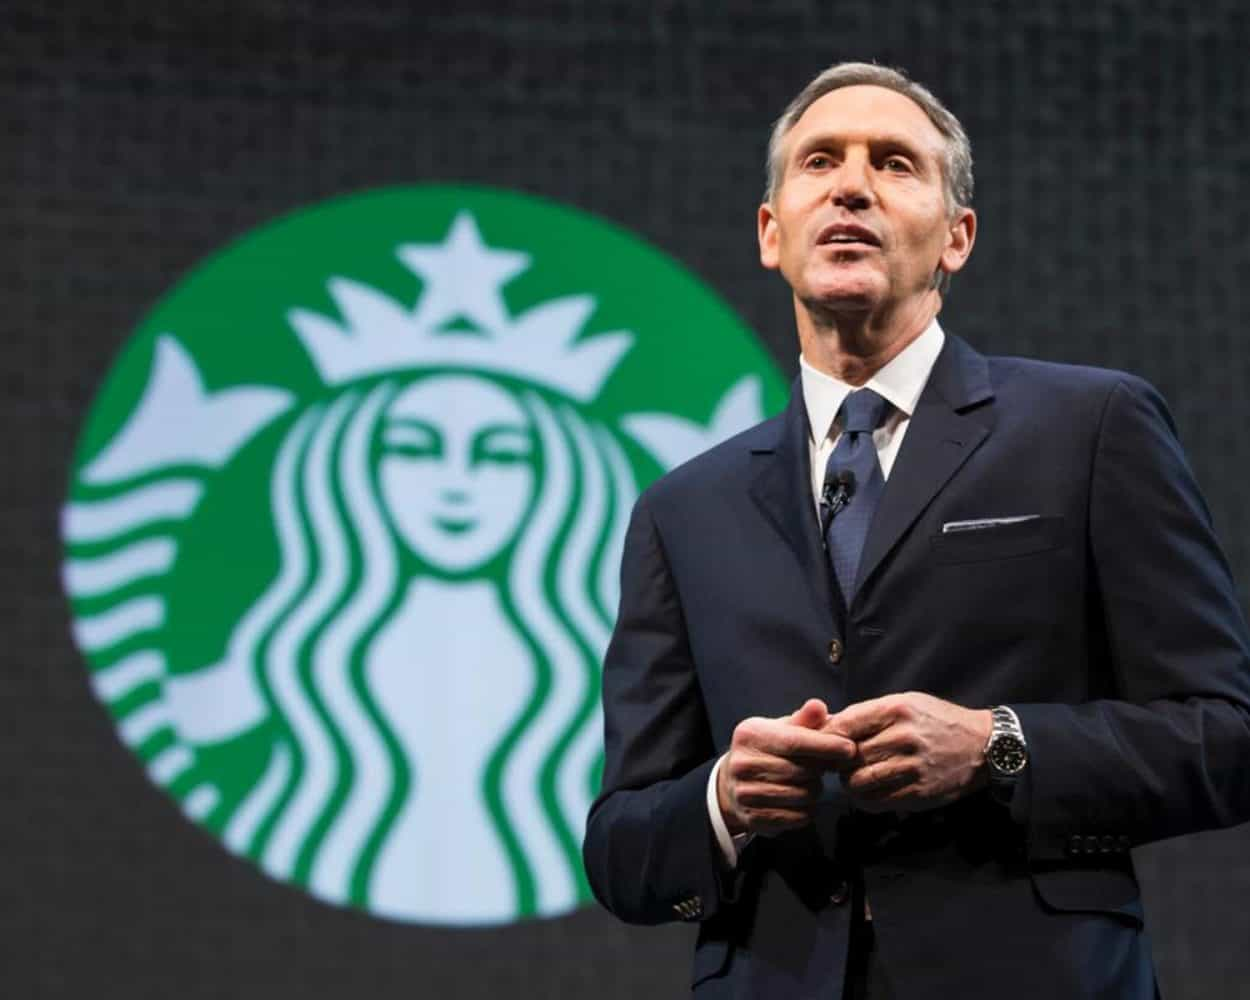 Starbucks Founder Howard Schultz's Shared Values (And Nine Other Tips for Retaining Customers)